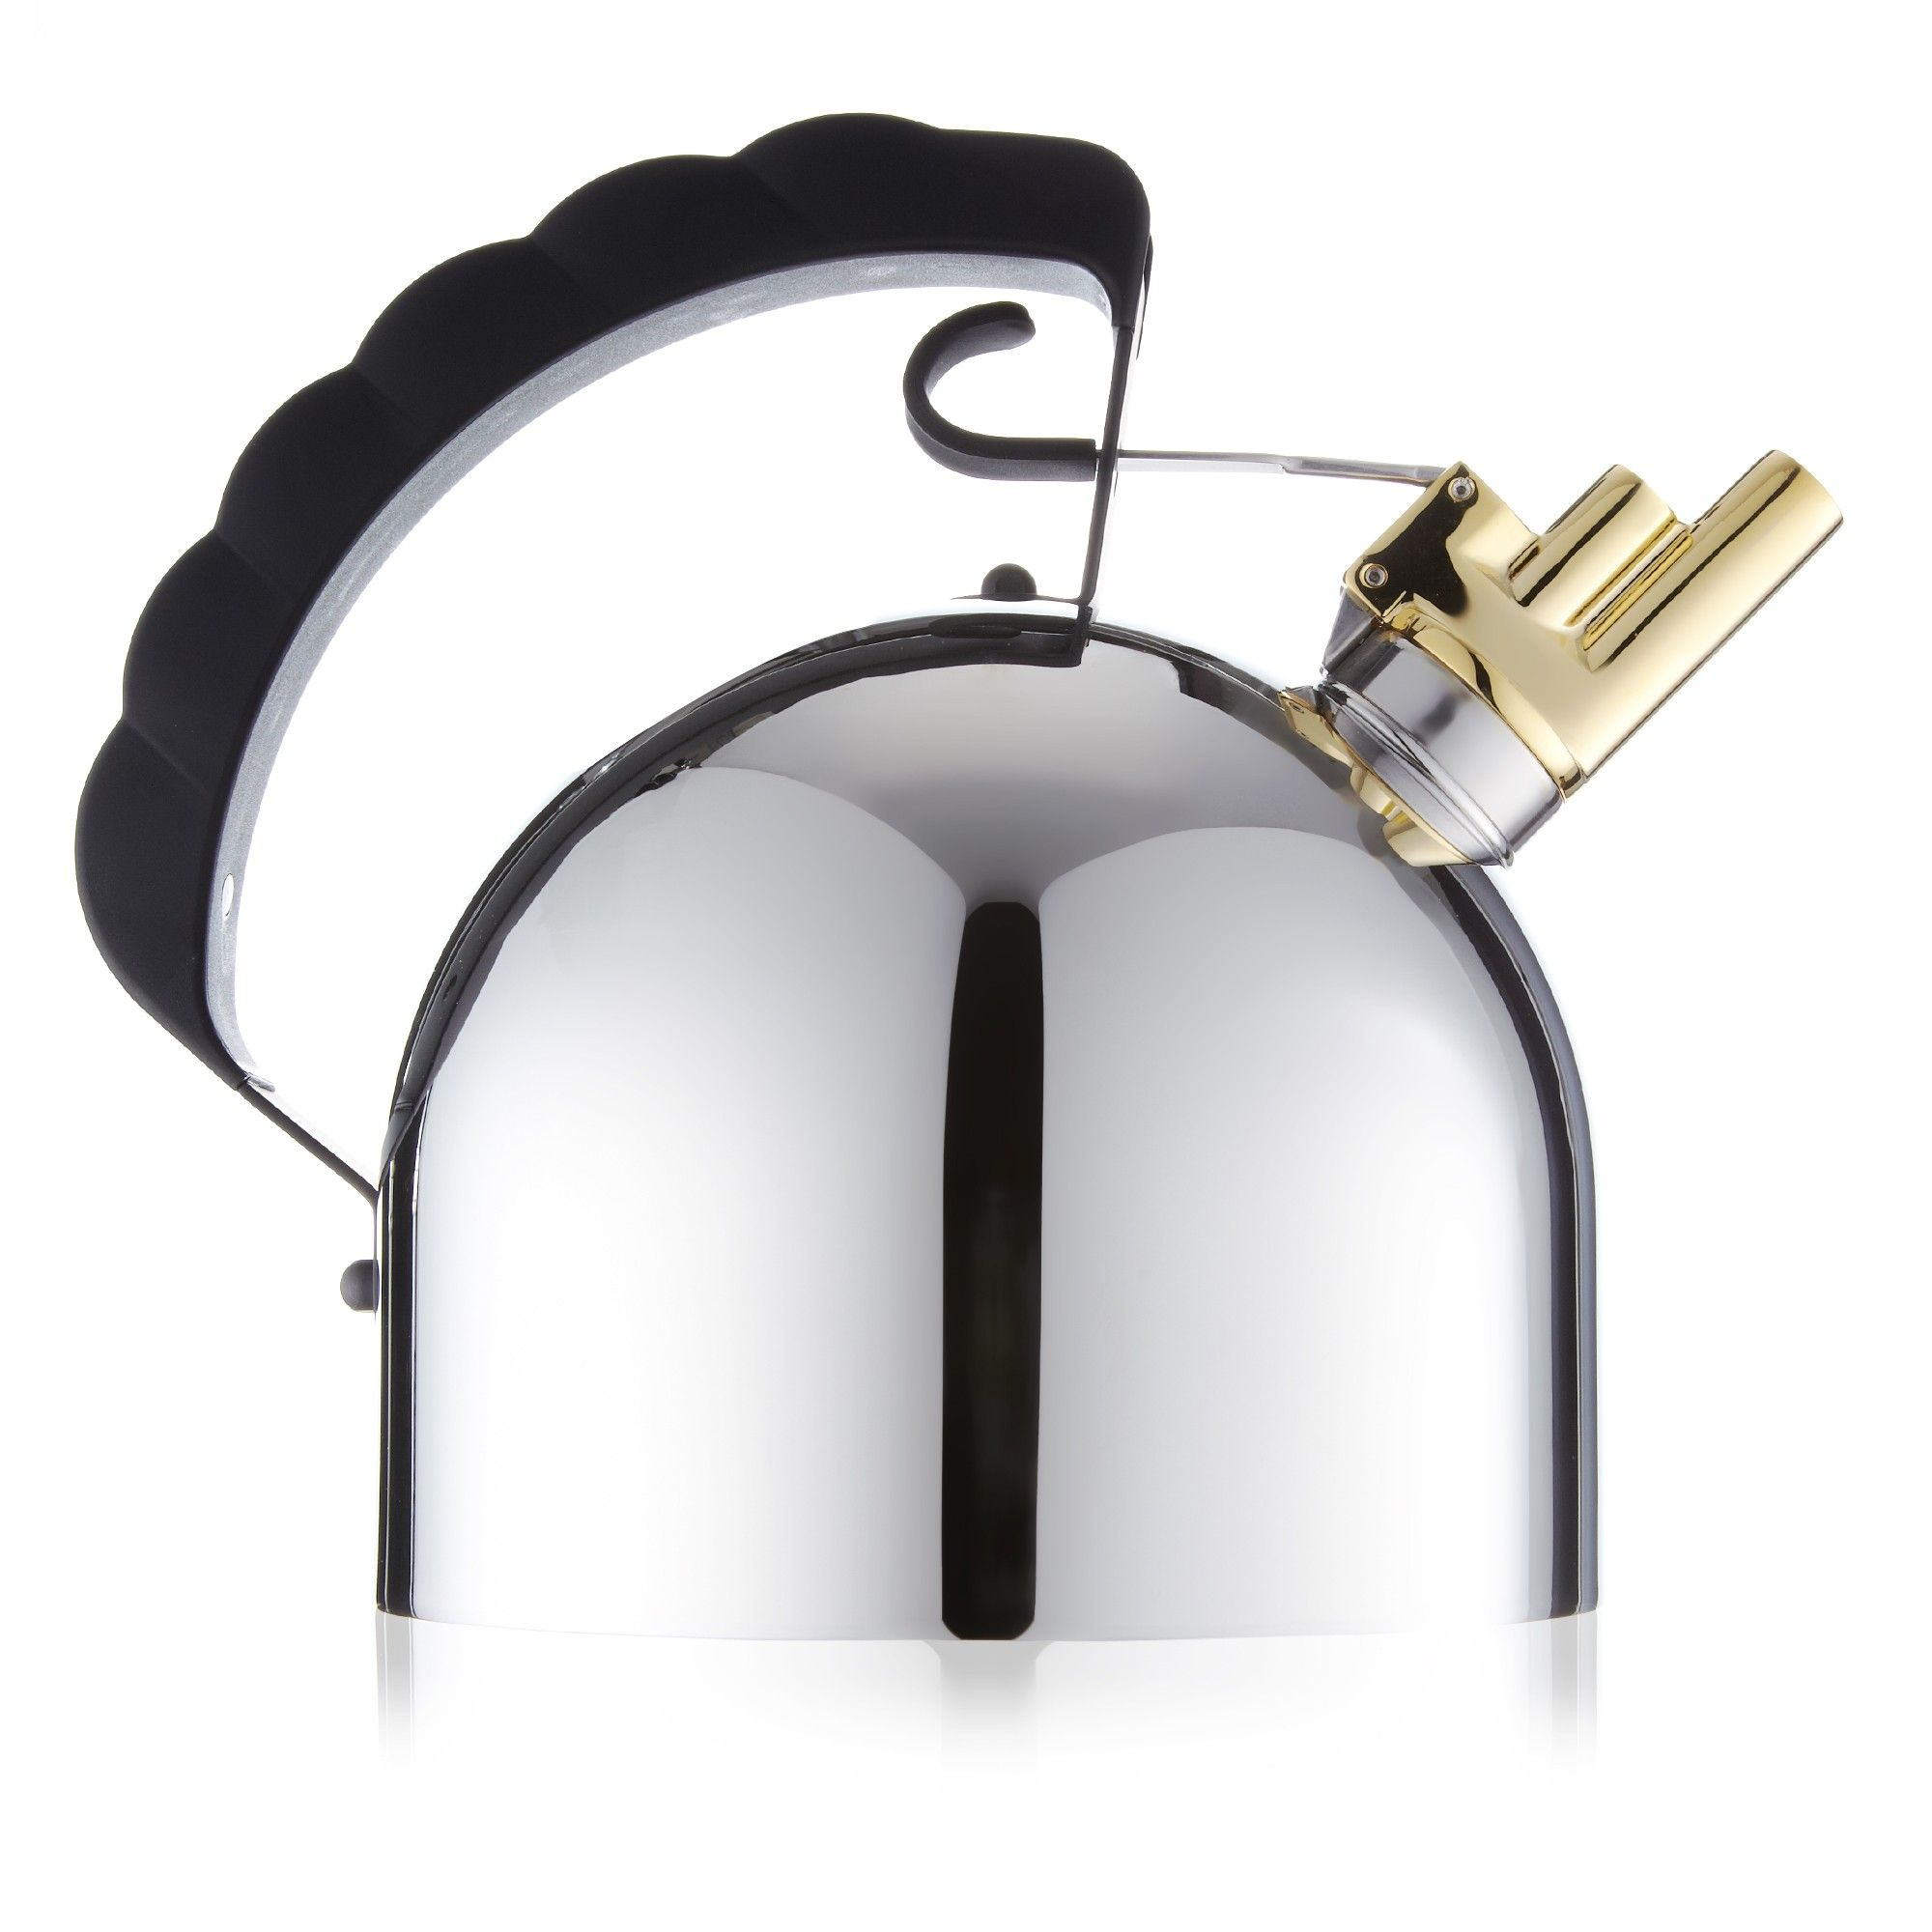 Italian Design Gifts Richard Sapper Fm Kettle Cute Girls Design Alessi